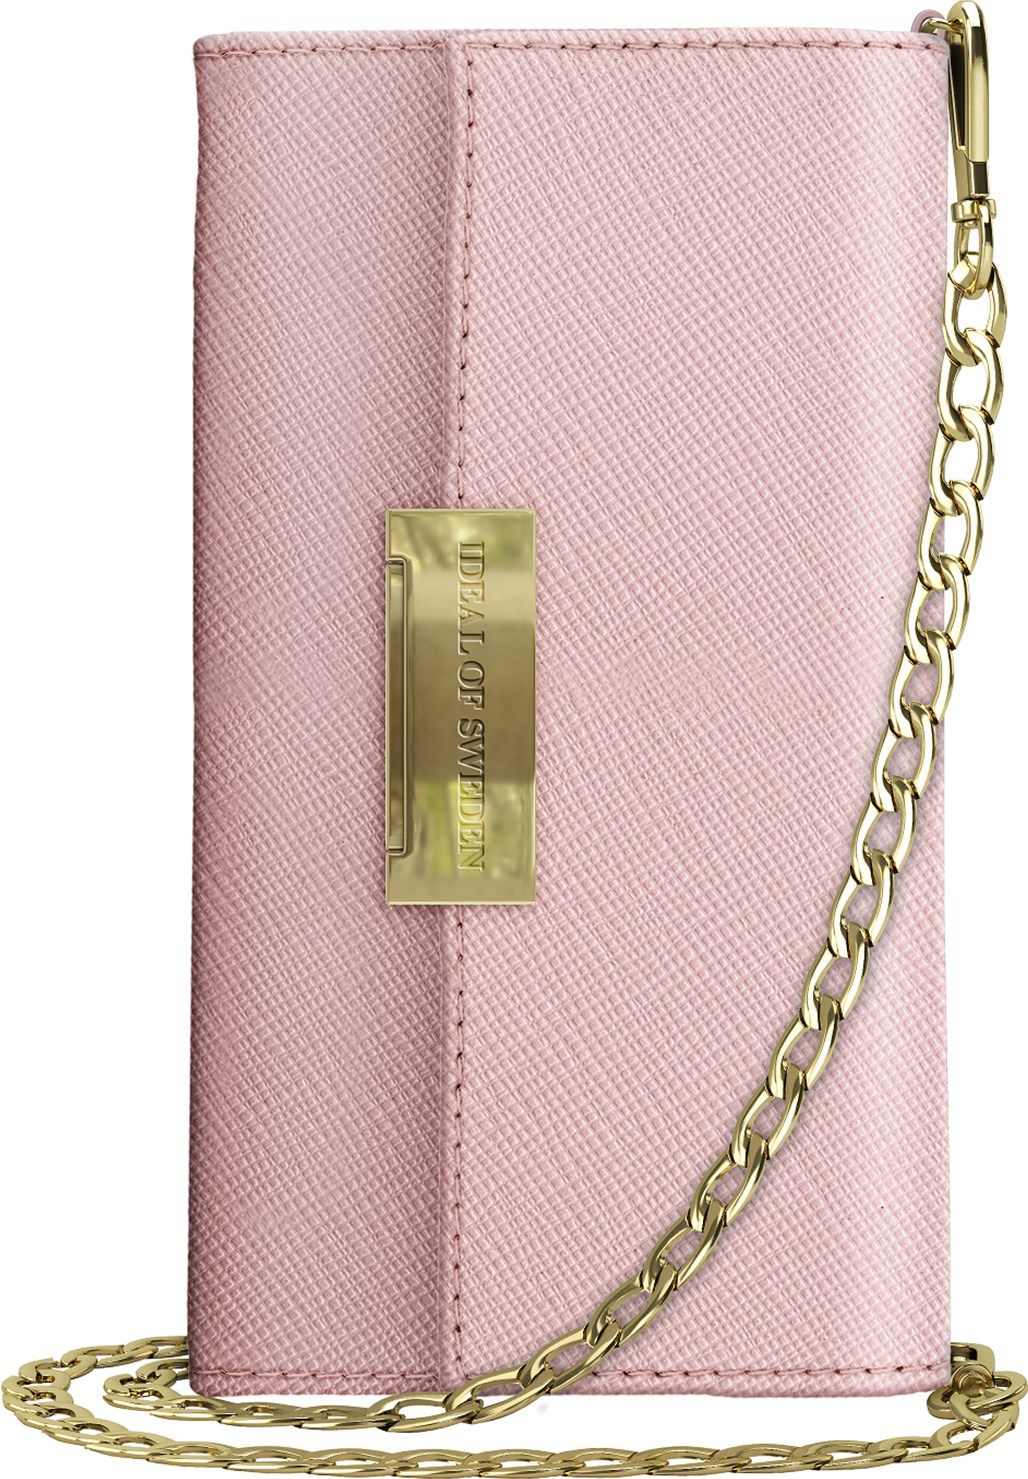 iDeal of Sweden Ideal Kensington Cross Body Clutch Iphone 6/6S/7/8 Pink